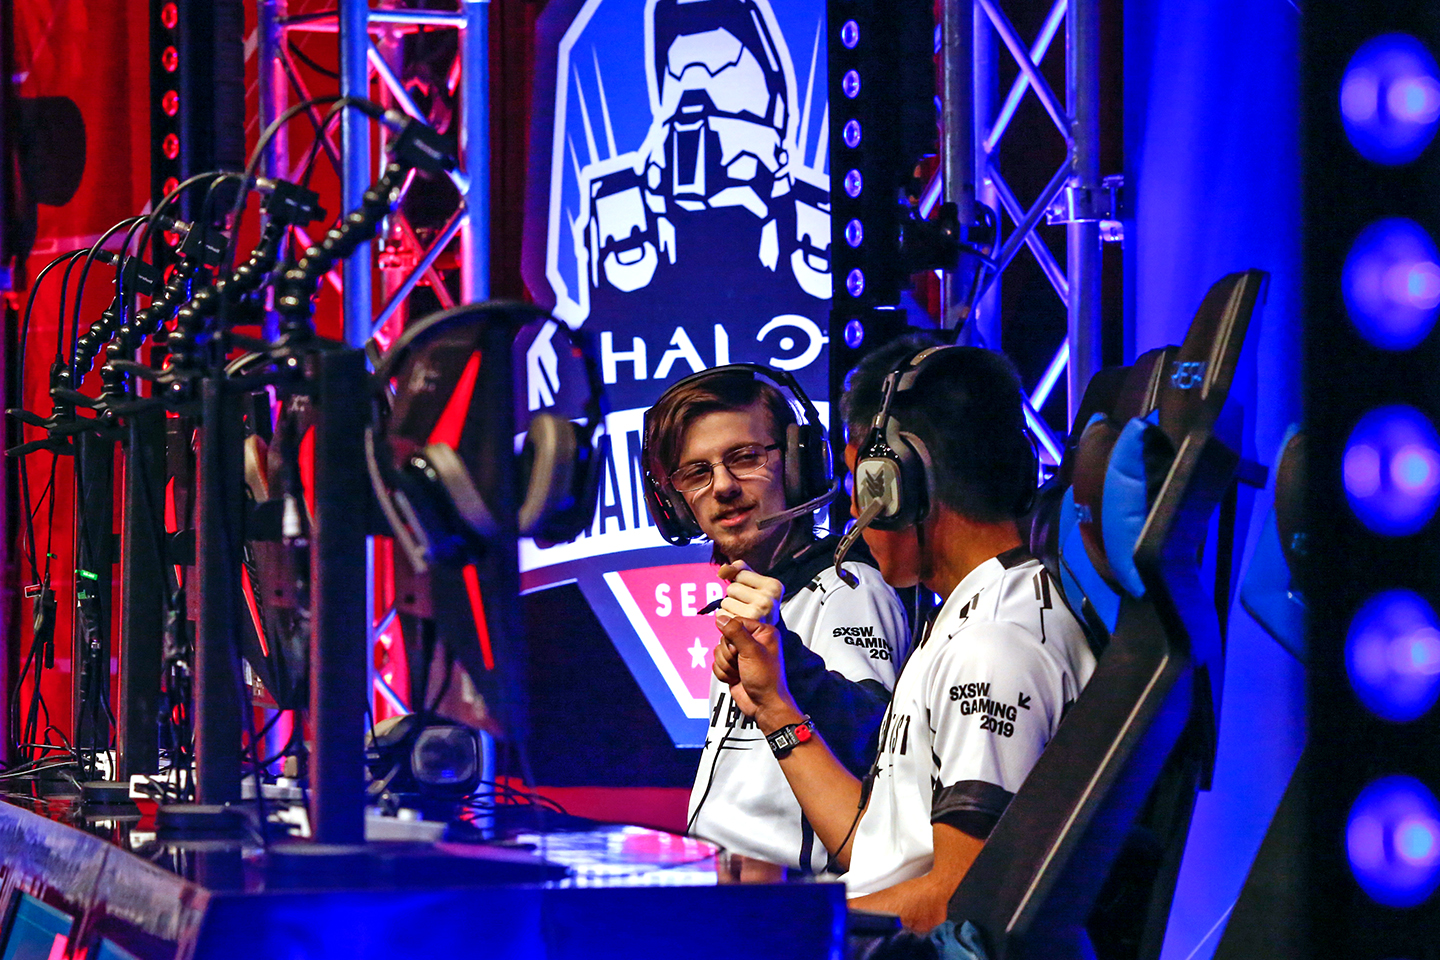 Halo Championship Series Invitational – Photo by Zachary de Guzman